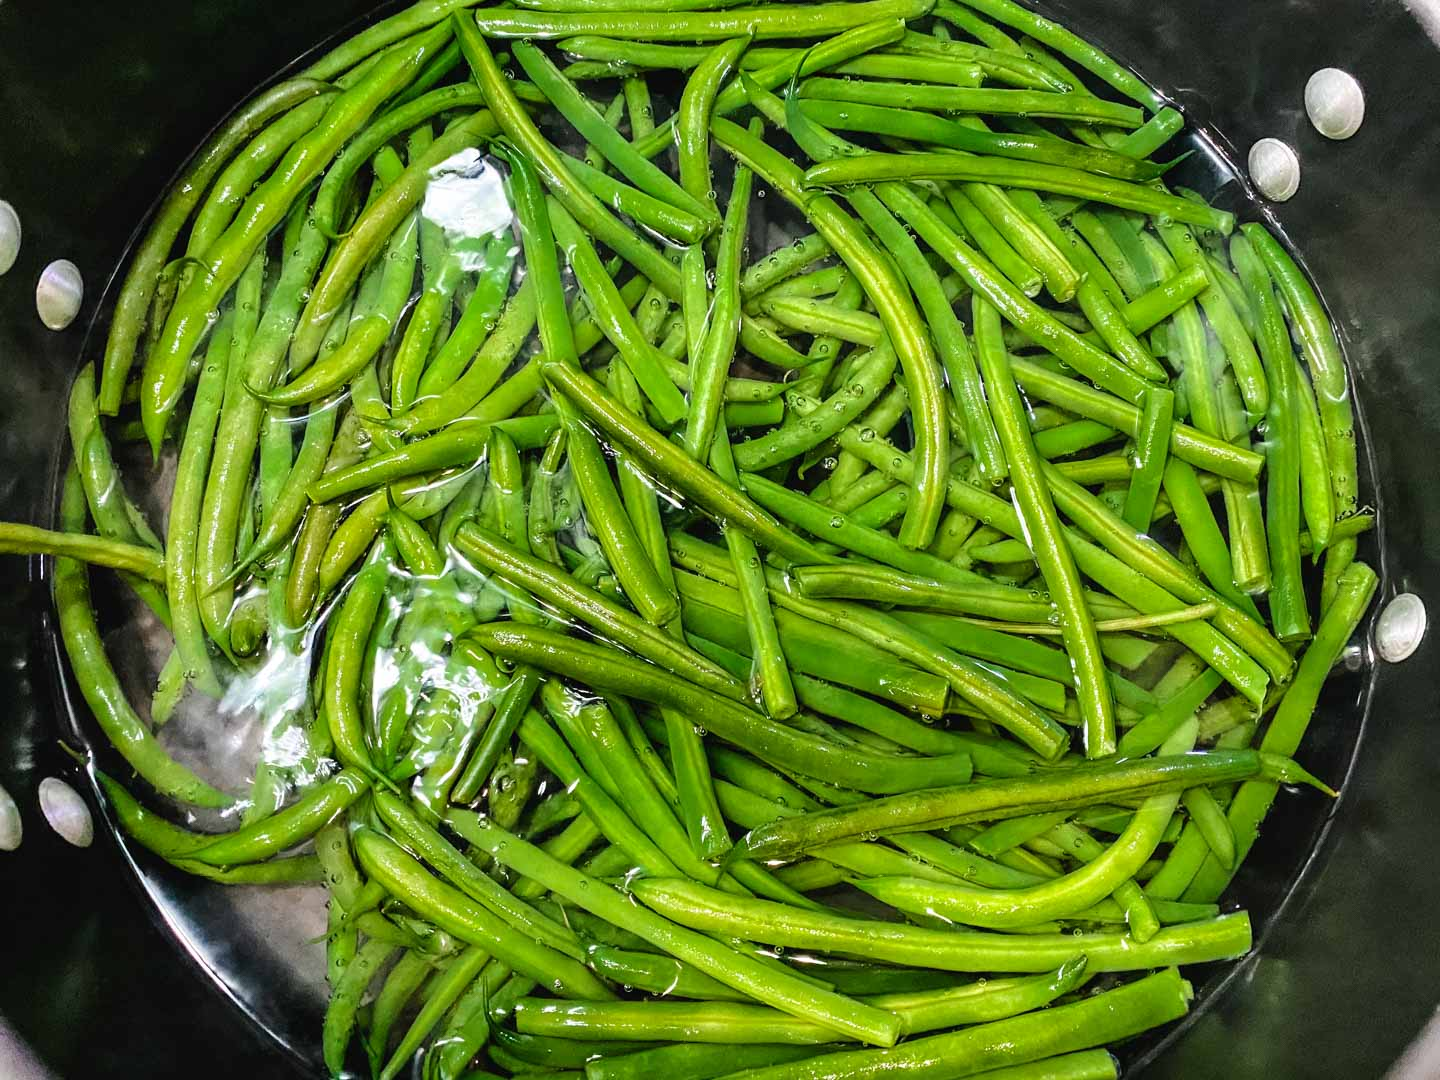 green beans sitting in water in a black pot.